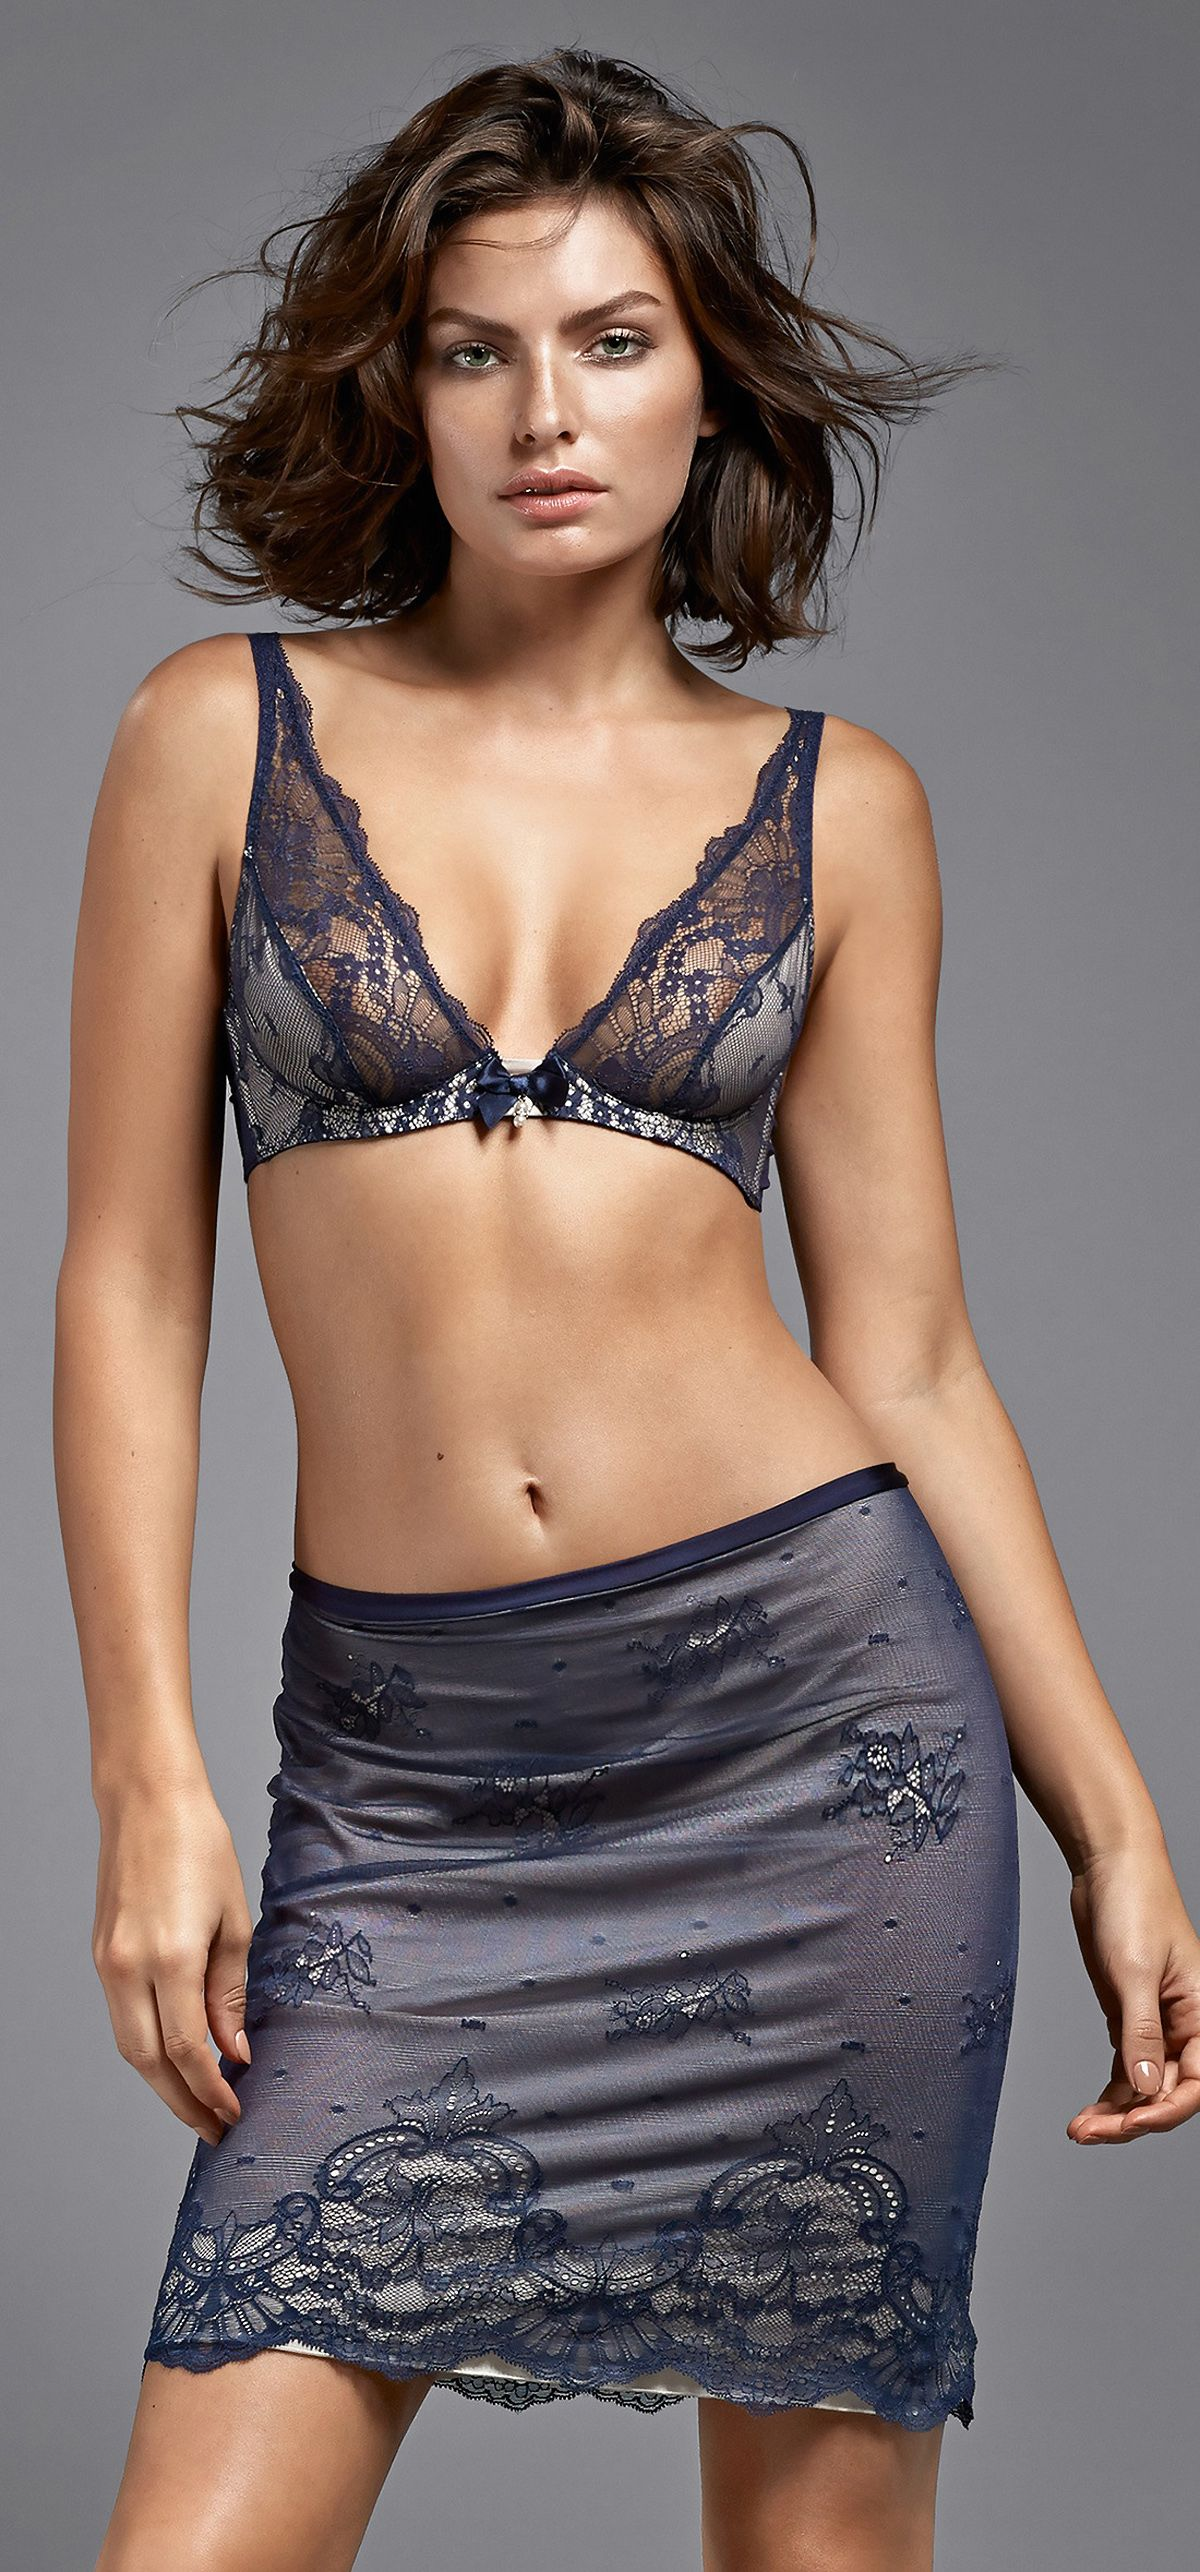 ALYSSA MILLER - Intimissimi Lingerie 2014 Collection